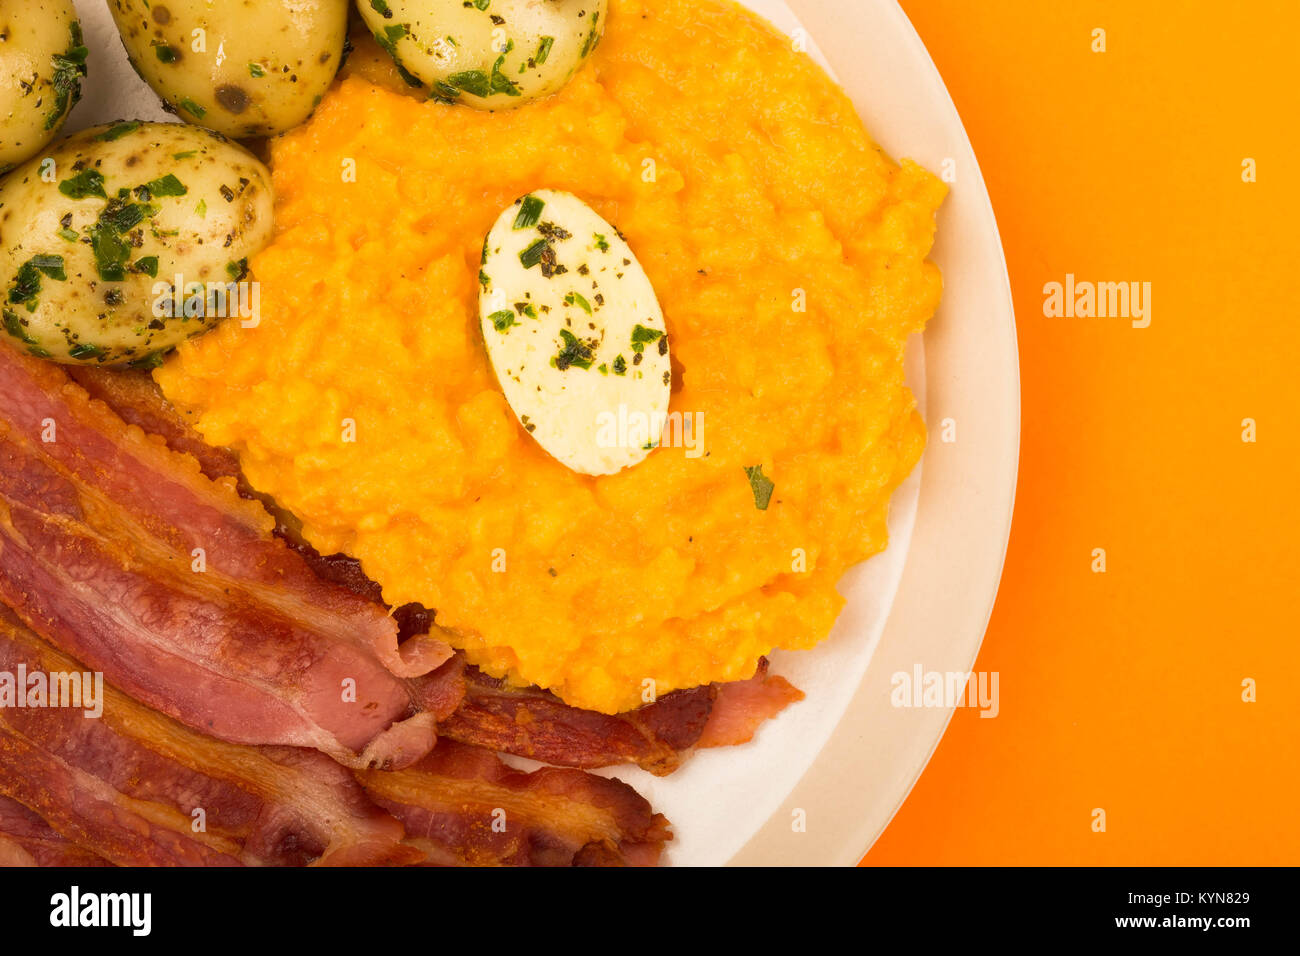 Norwegian Pork or Crispy Bacon With Mashed Swede and Boiled Potatoes Meal Against an Orange Background - Stock Image